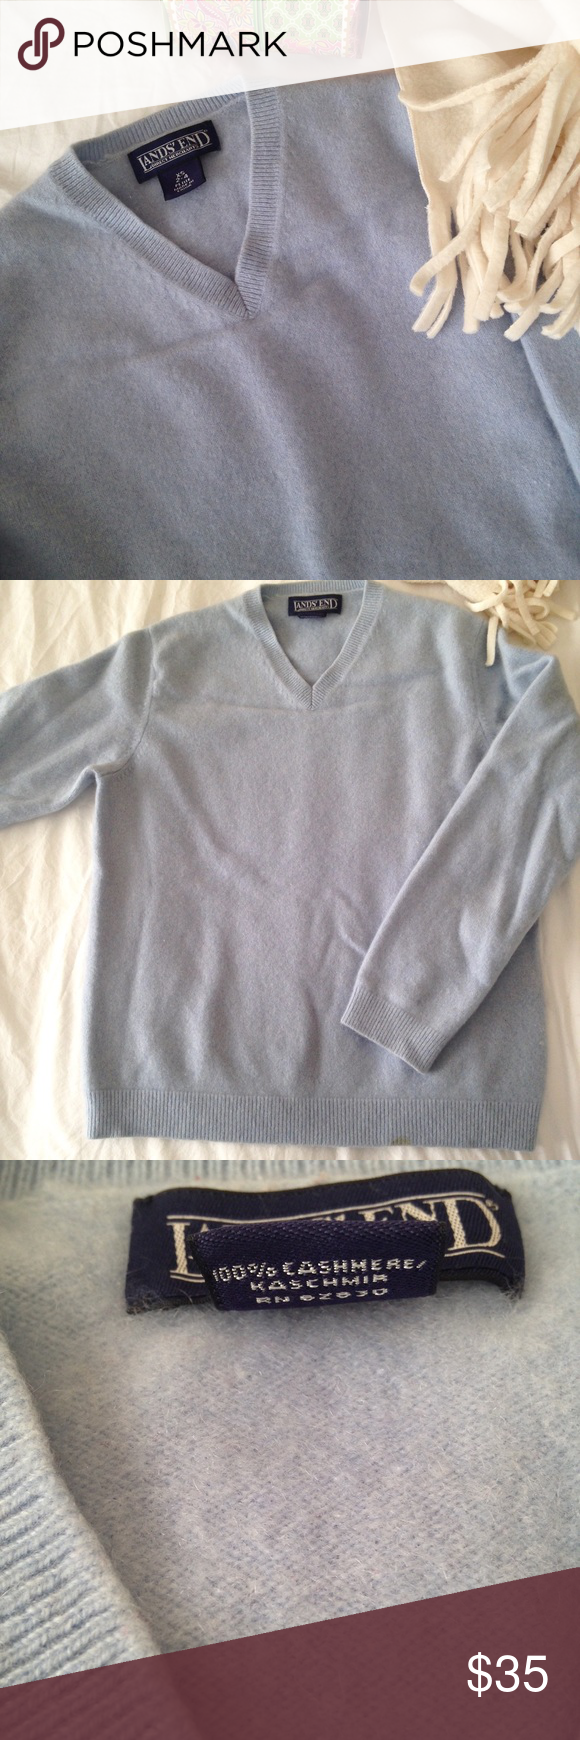 🌲Land's End🌲 100% cashmere sweater | Light blue color, Cashmere ...